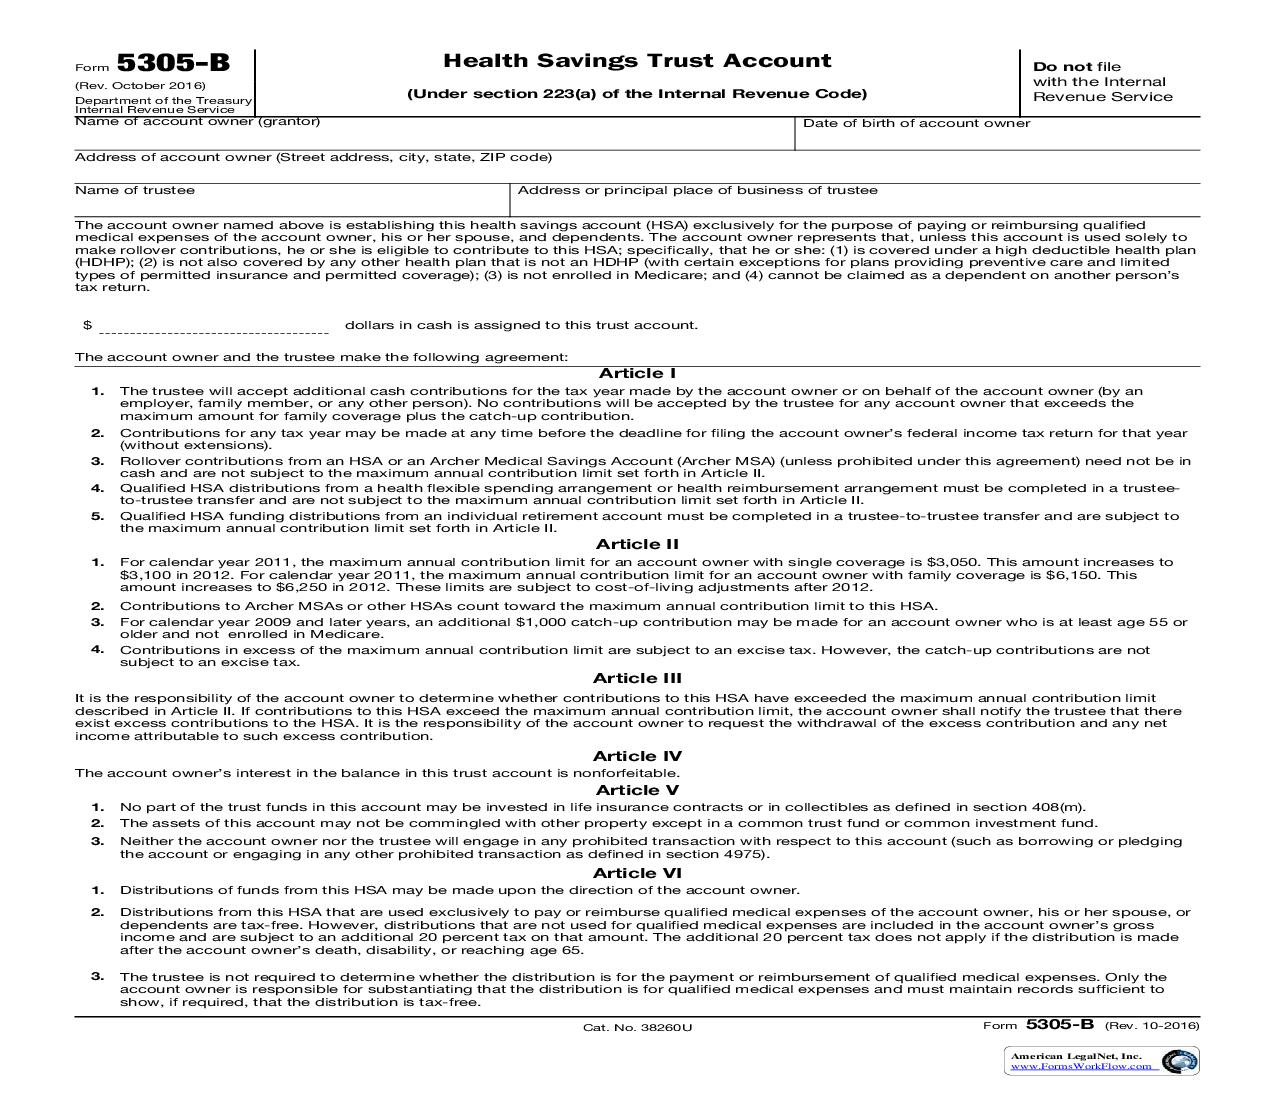 Form 5305-B Health Savings Trust Account {5305-B} | Pdf Fpdf Doc Docx | Official Federal Forms